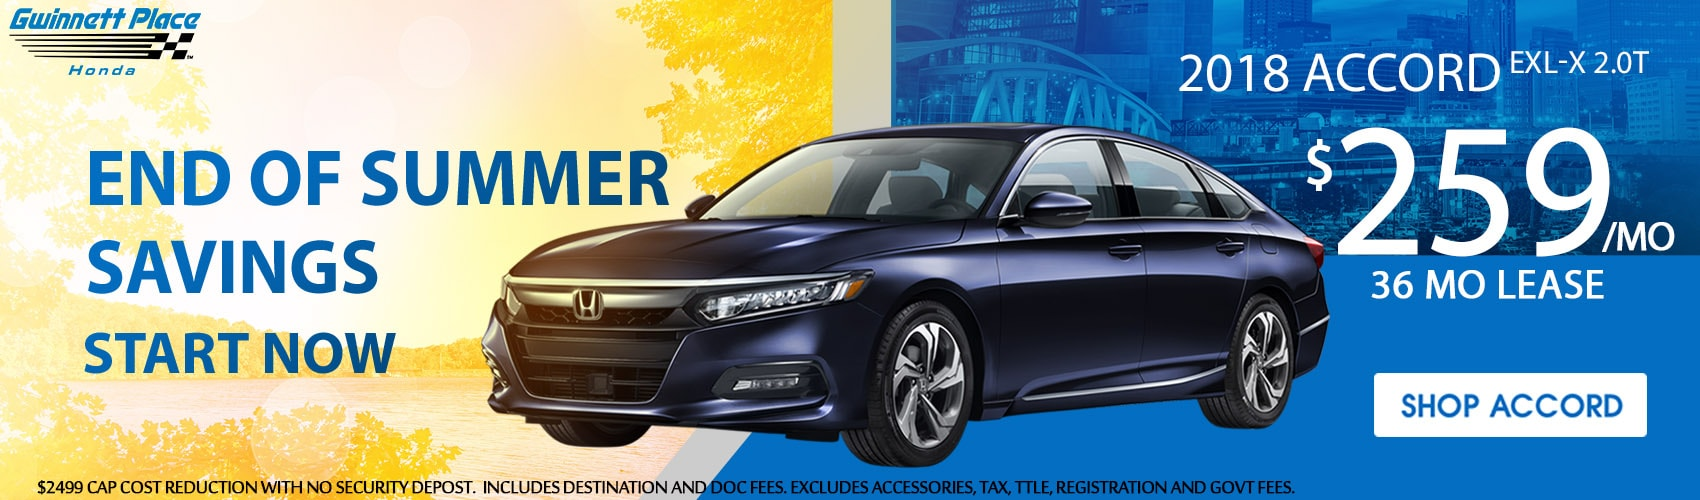 Accord EX L 2.0T Lease Special